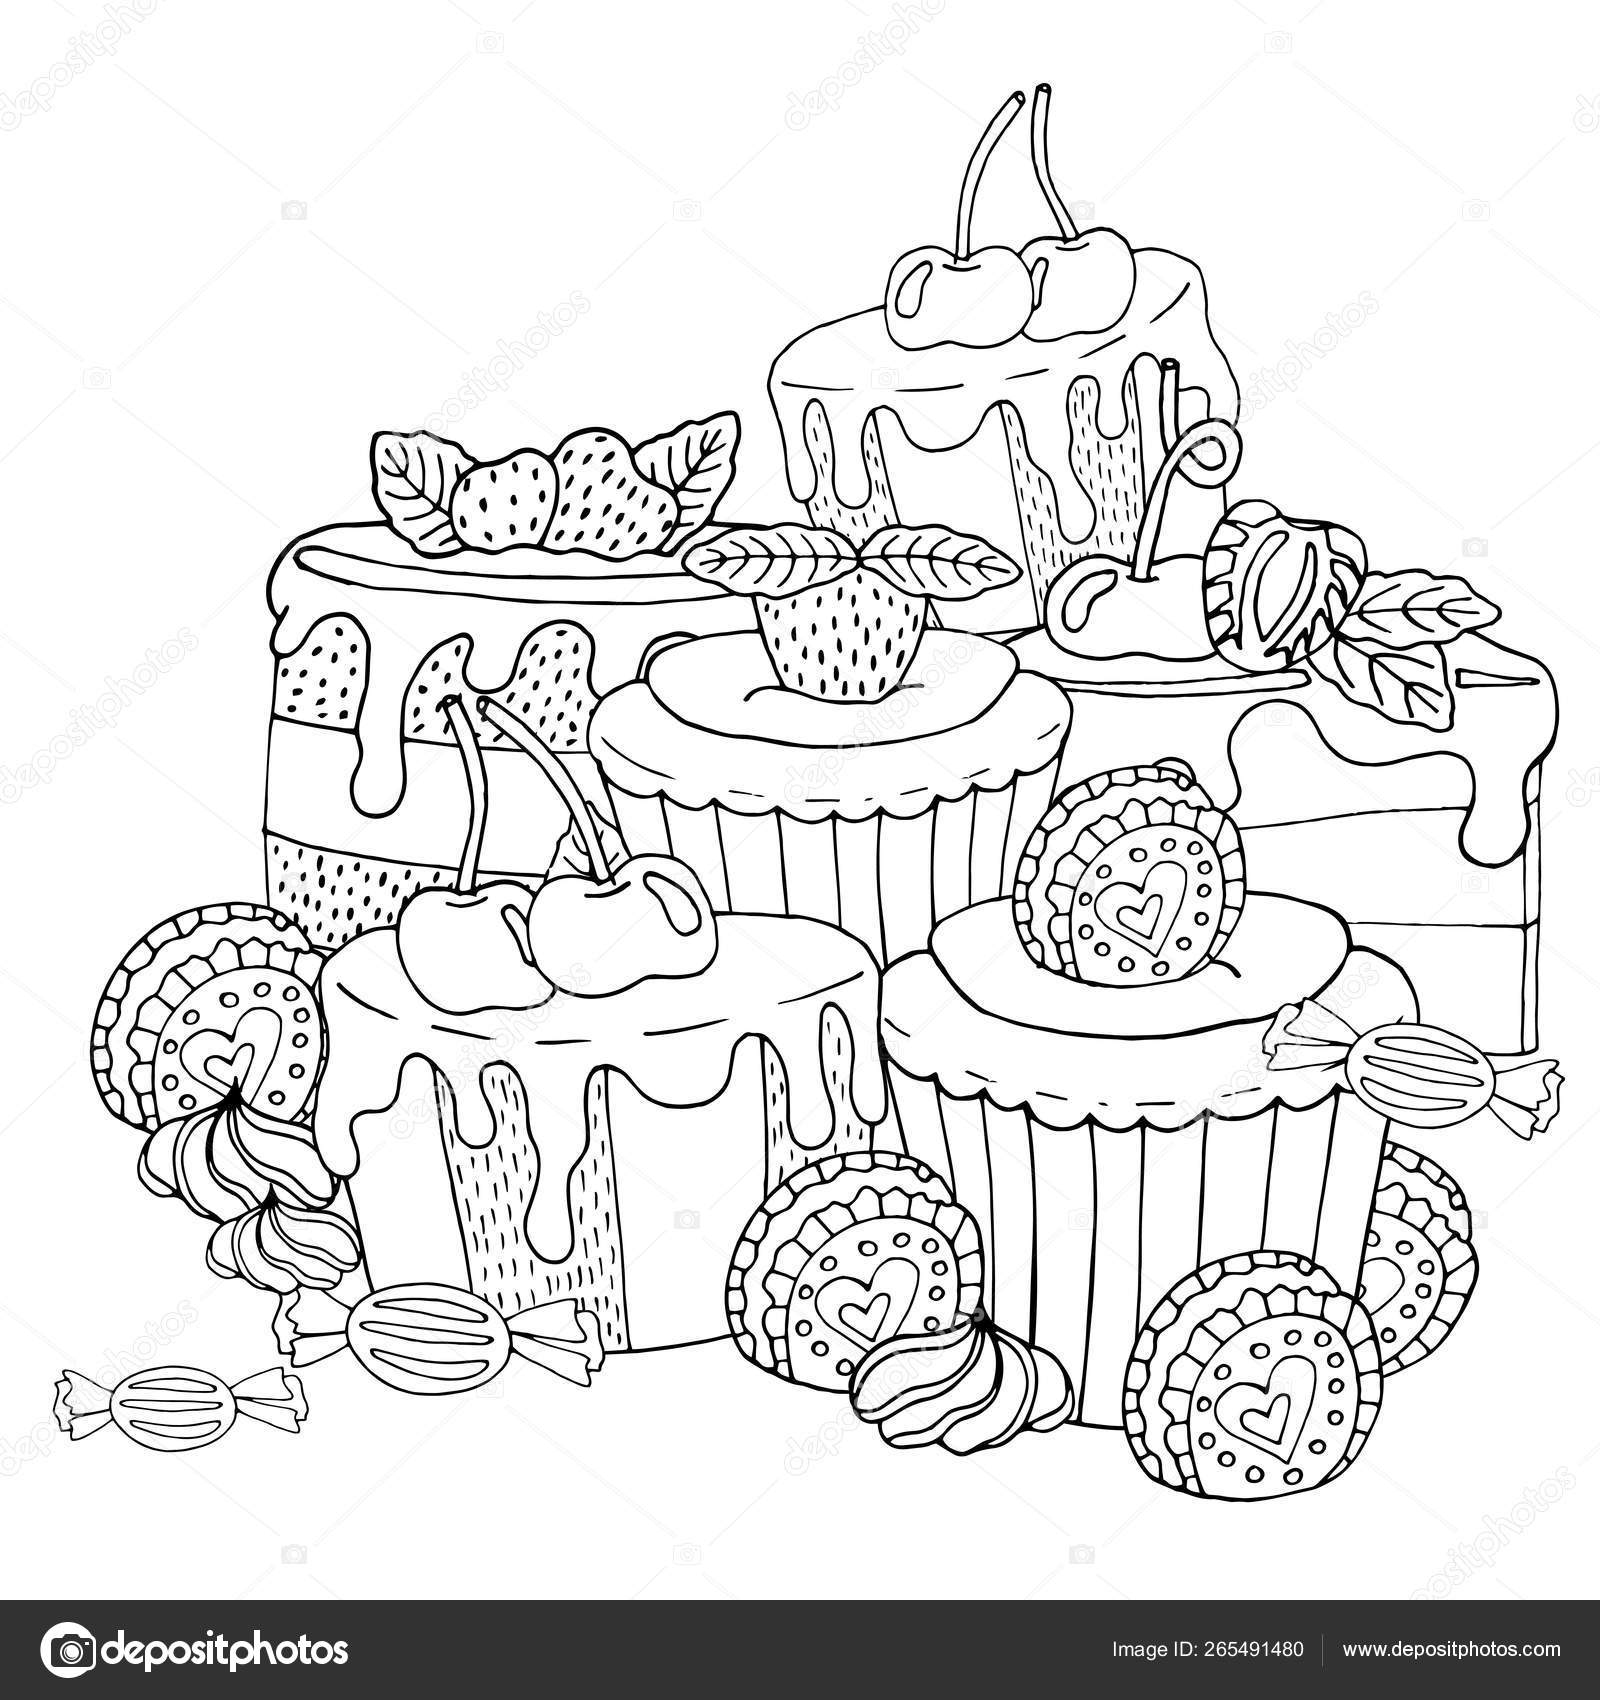 Coloring Page With Cake Cupcake Candy And Other Dessert With B Vector Image By C Ellina200 Mail Ru Vector Stock 265491480